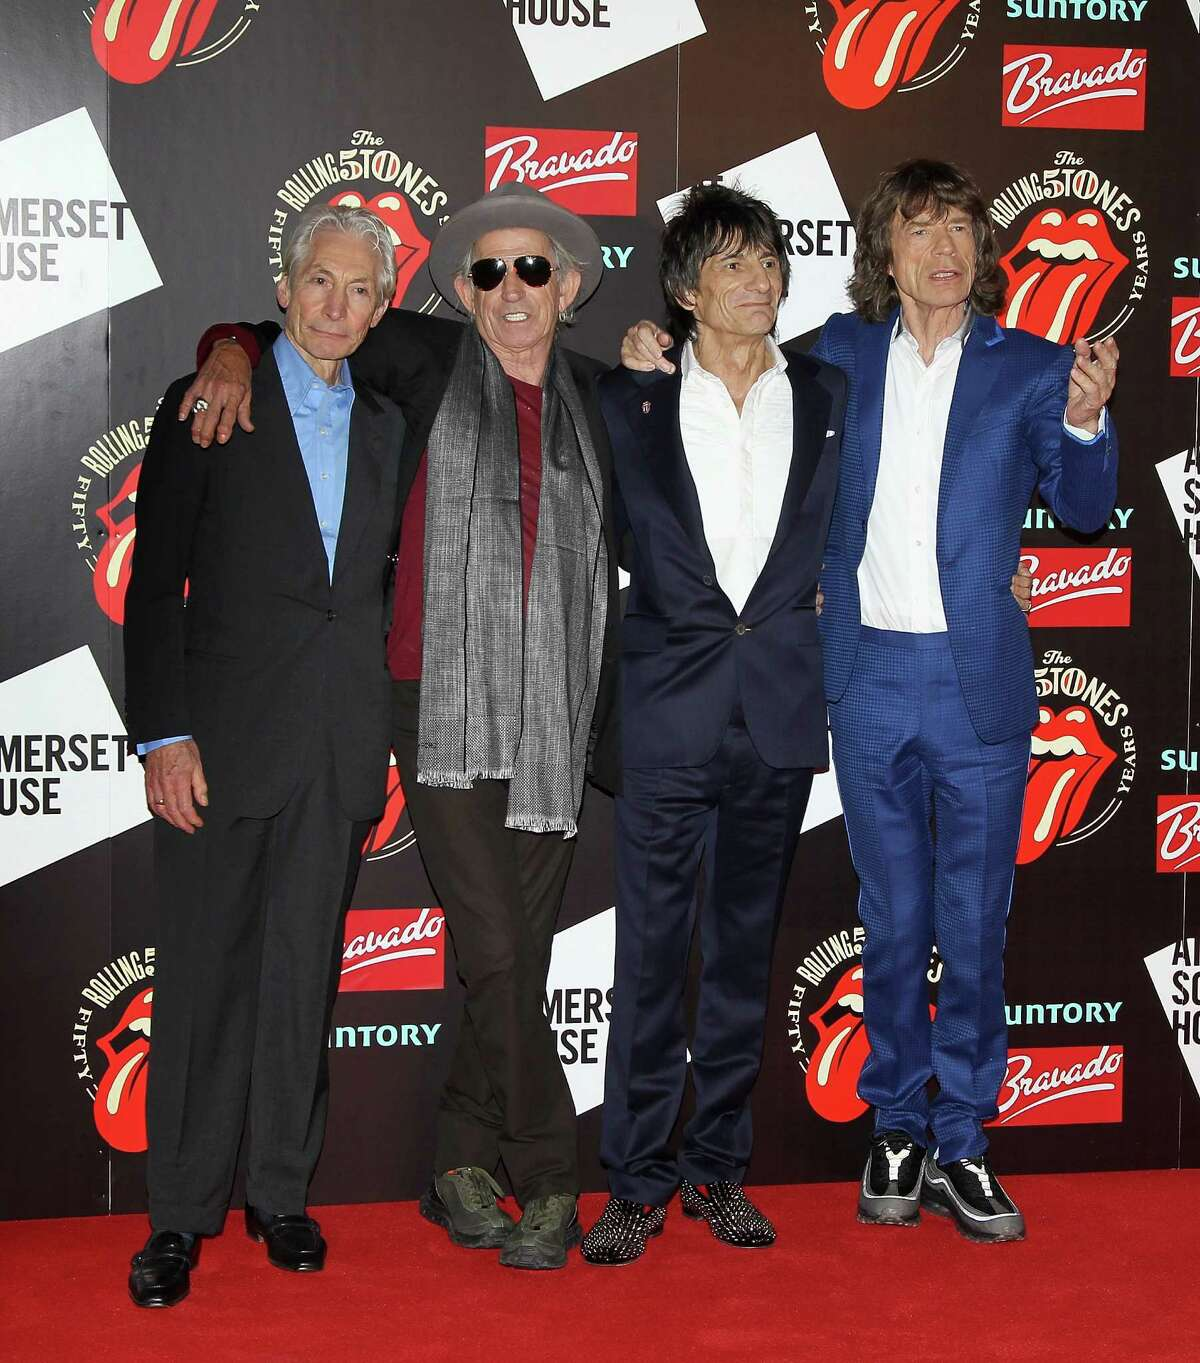 Charlie Watts, Keith Richards, Ronnie Wood and Mick Jagger attend as The Rolling Stones celebrate their 50th anniversary with an exhibition at Somerset House in 2012 in London, England.